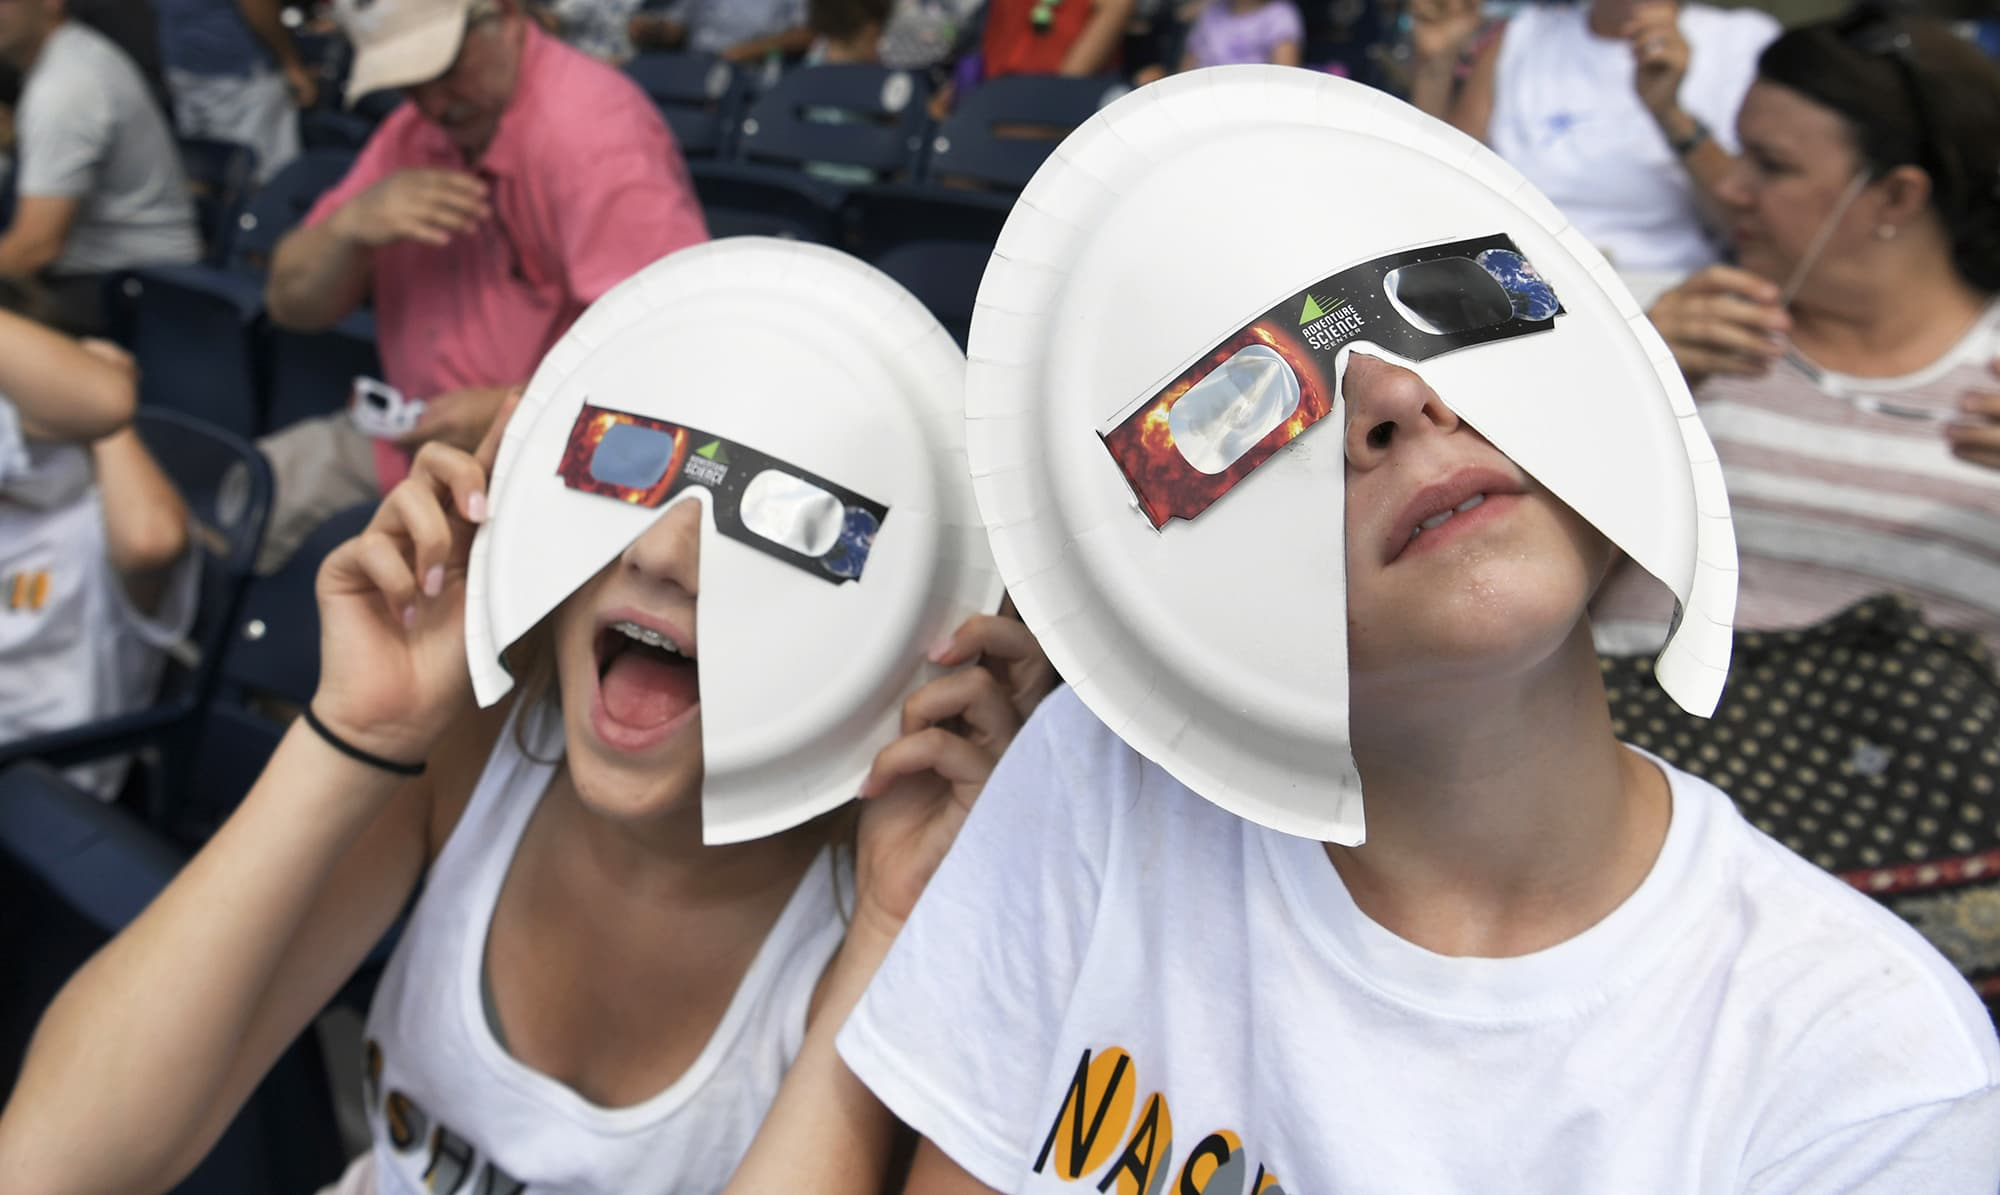 Annie Gray Penuel and Lauren Peck, both of Dallas, wear their makeshift eclipse glasses at Nashville's eclipse viewing party ahead of the solar eclipse at First Tennessee Park.— AP